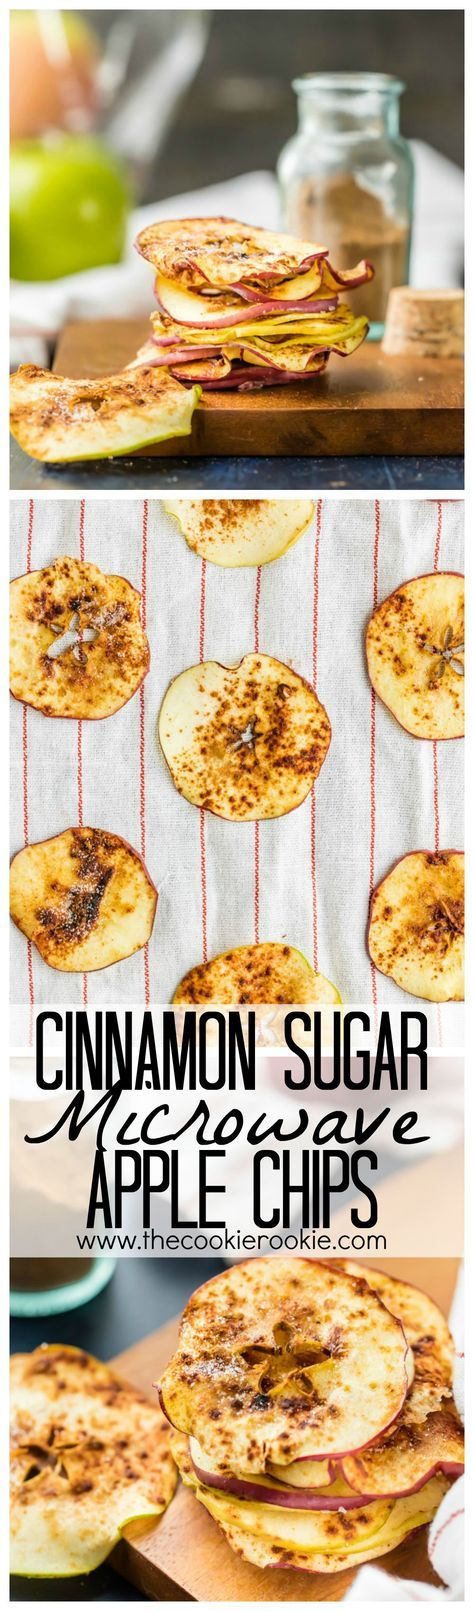 Cinnamon Sugar Microwave Le Chips The Perfect Sweet Snack Made In About 6 Minutes